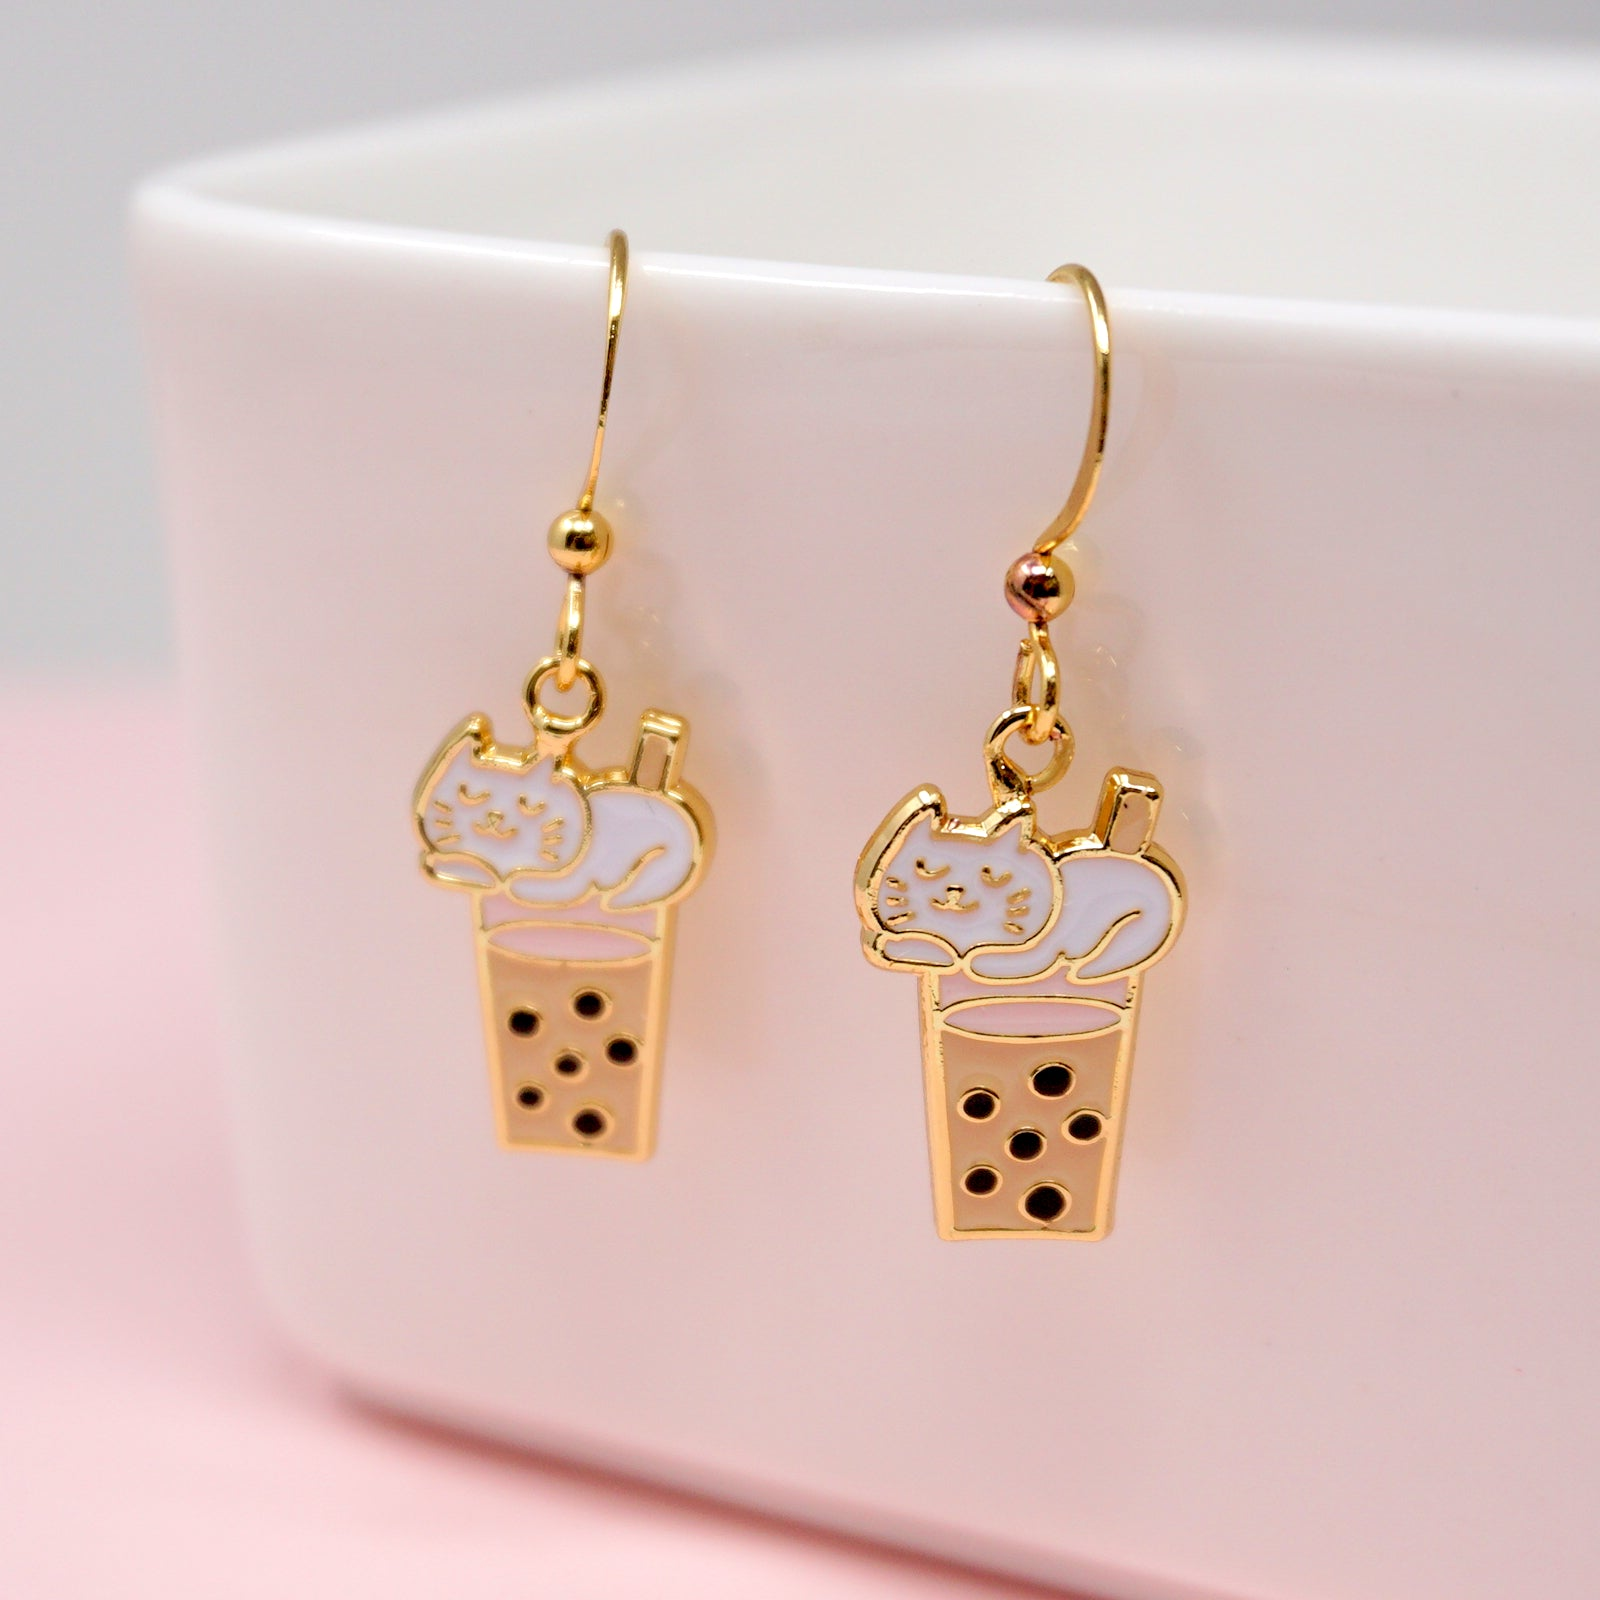 Boba Kitty Enamel Earrings/ Bracelet/ Necklace